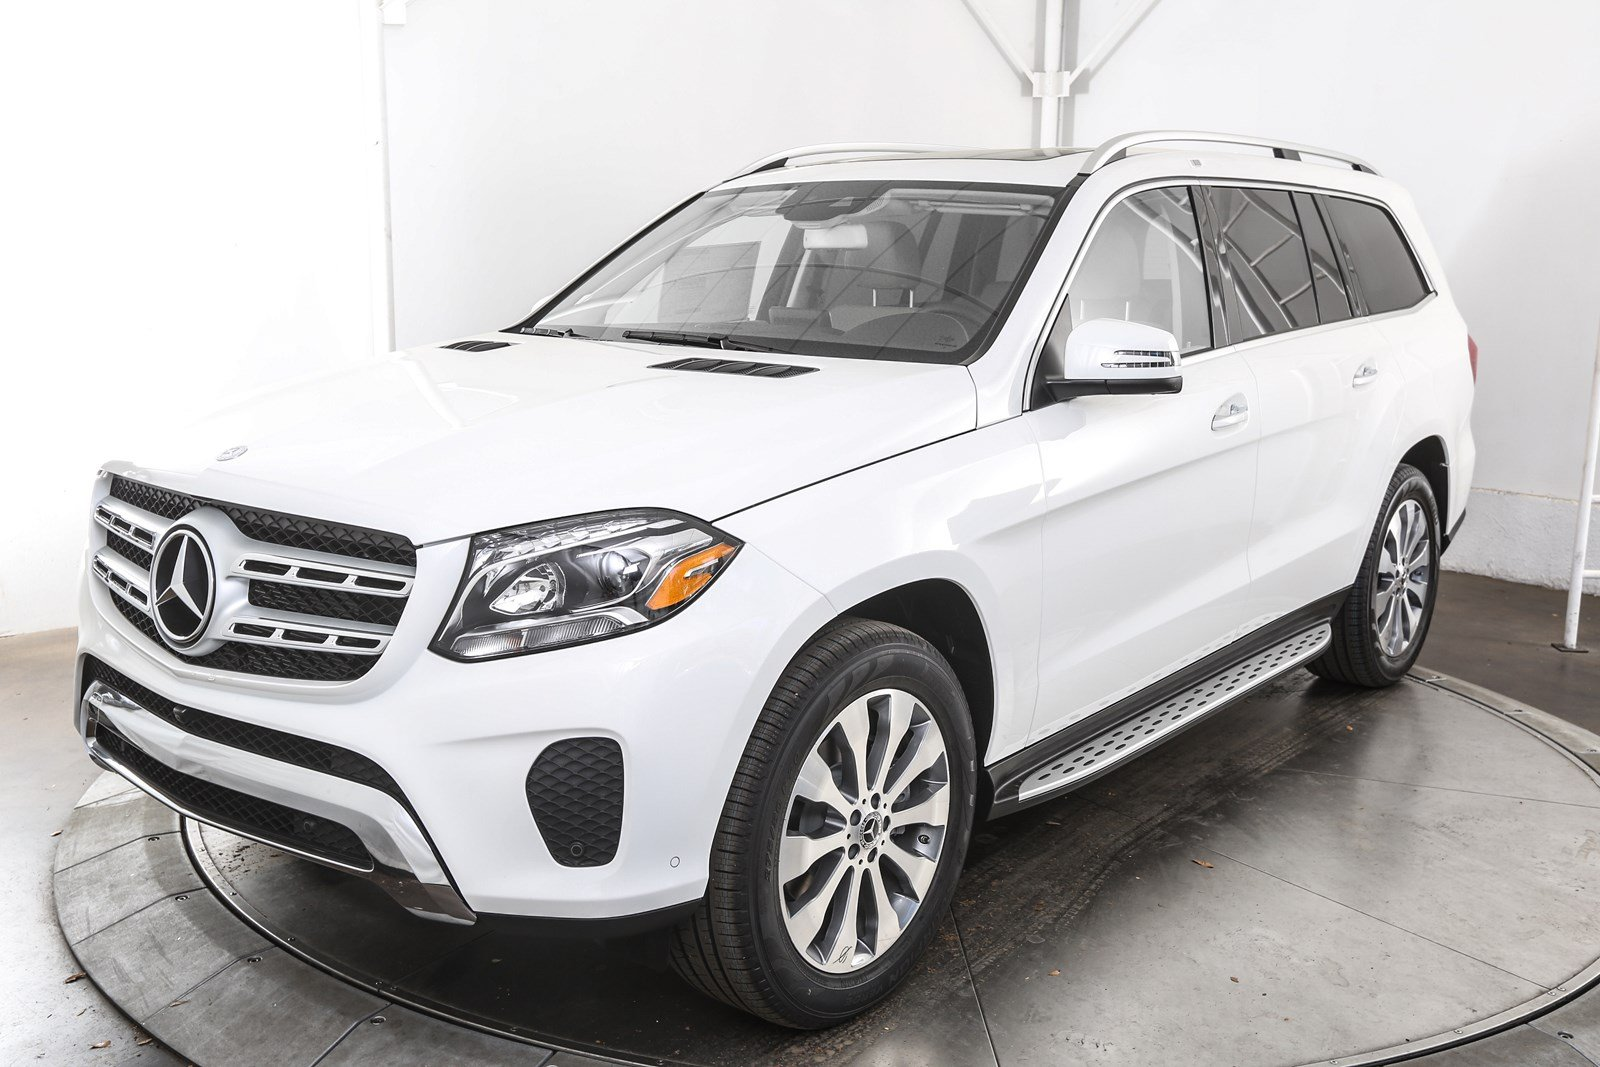 New 2017 mercedes benz gls gls 450 suv in austin m56861 for 2017 mercedes benz gls 450